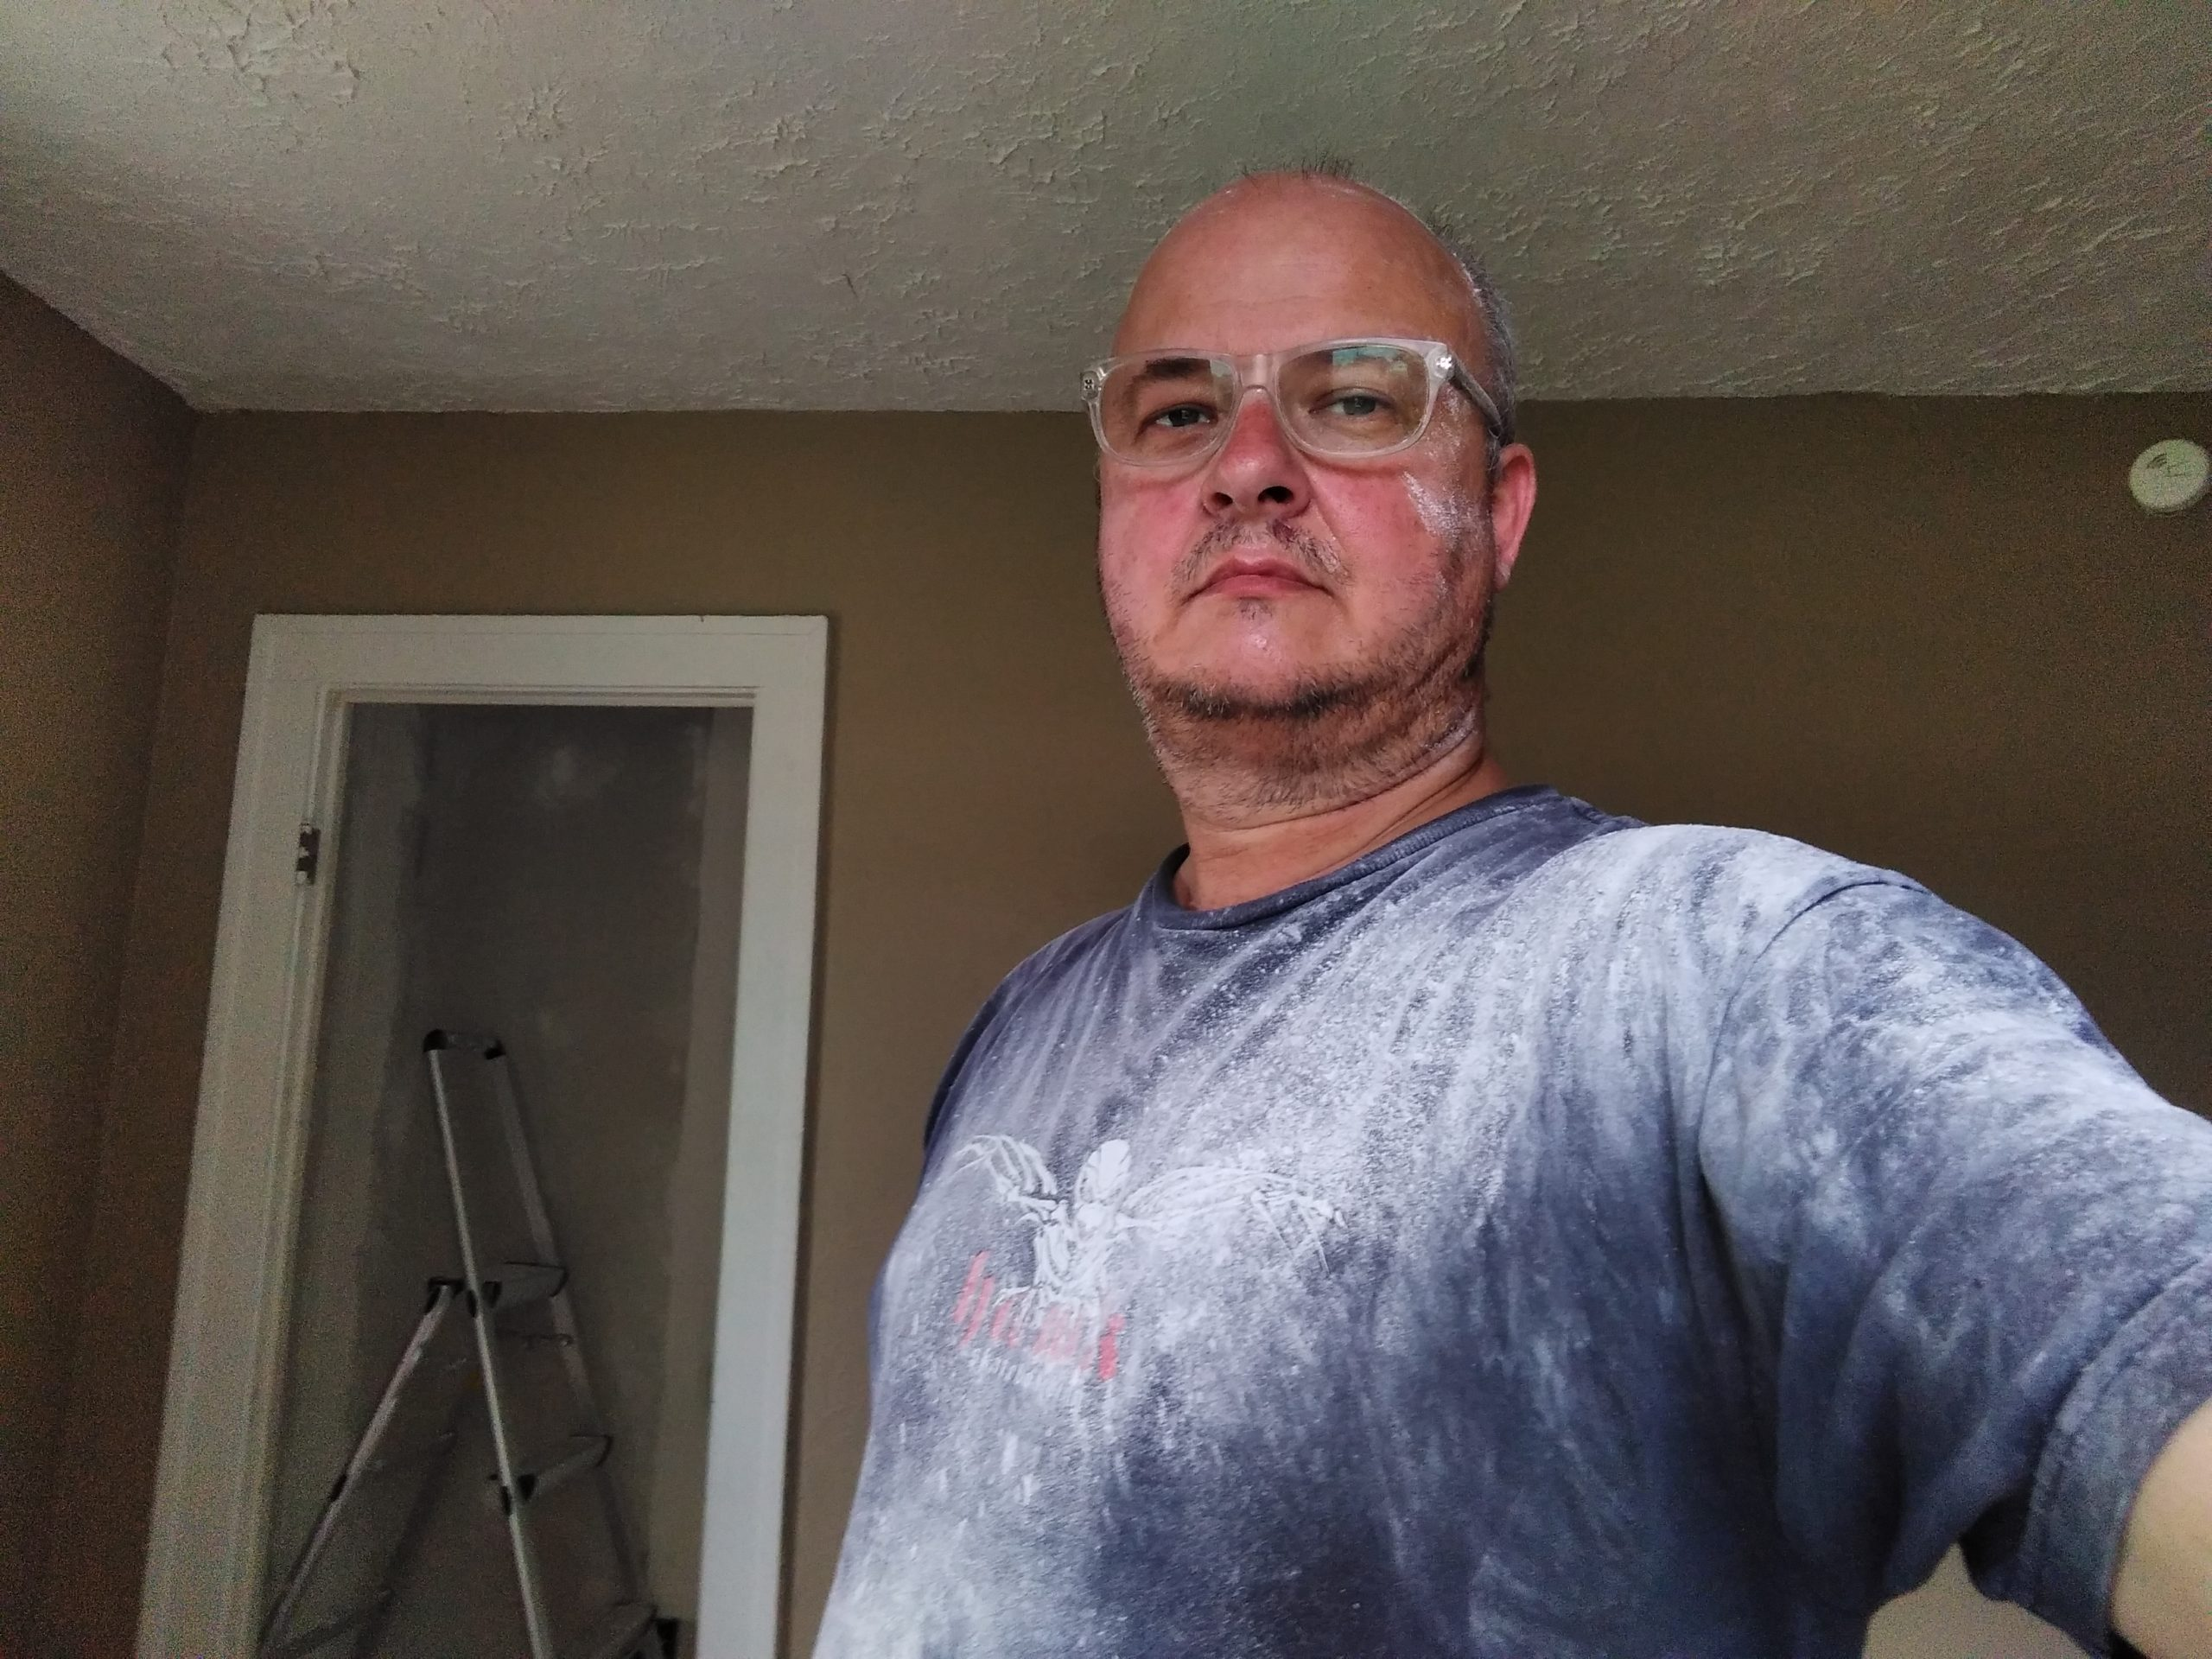 I', wearing a navy blue t-shirt covered in plaster dust, and clear-framed eyeglasses. My face diplays a mixture of stubble and plaster dust. The background shows the wall of the kitche and the doorway of the pantry.